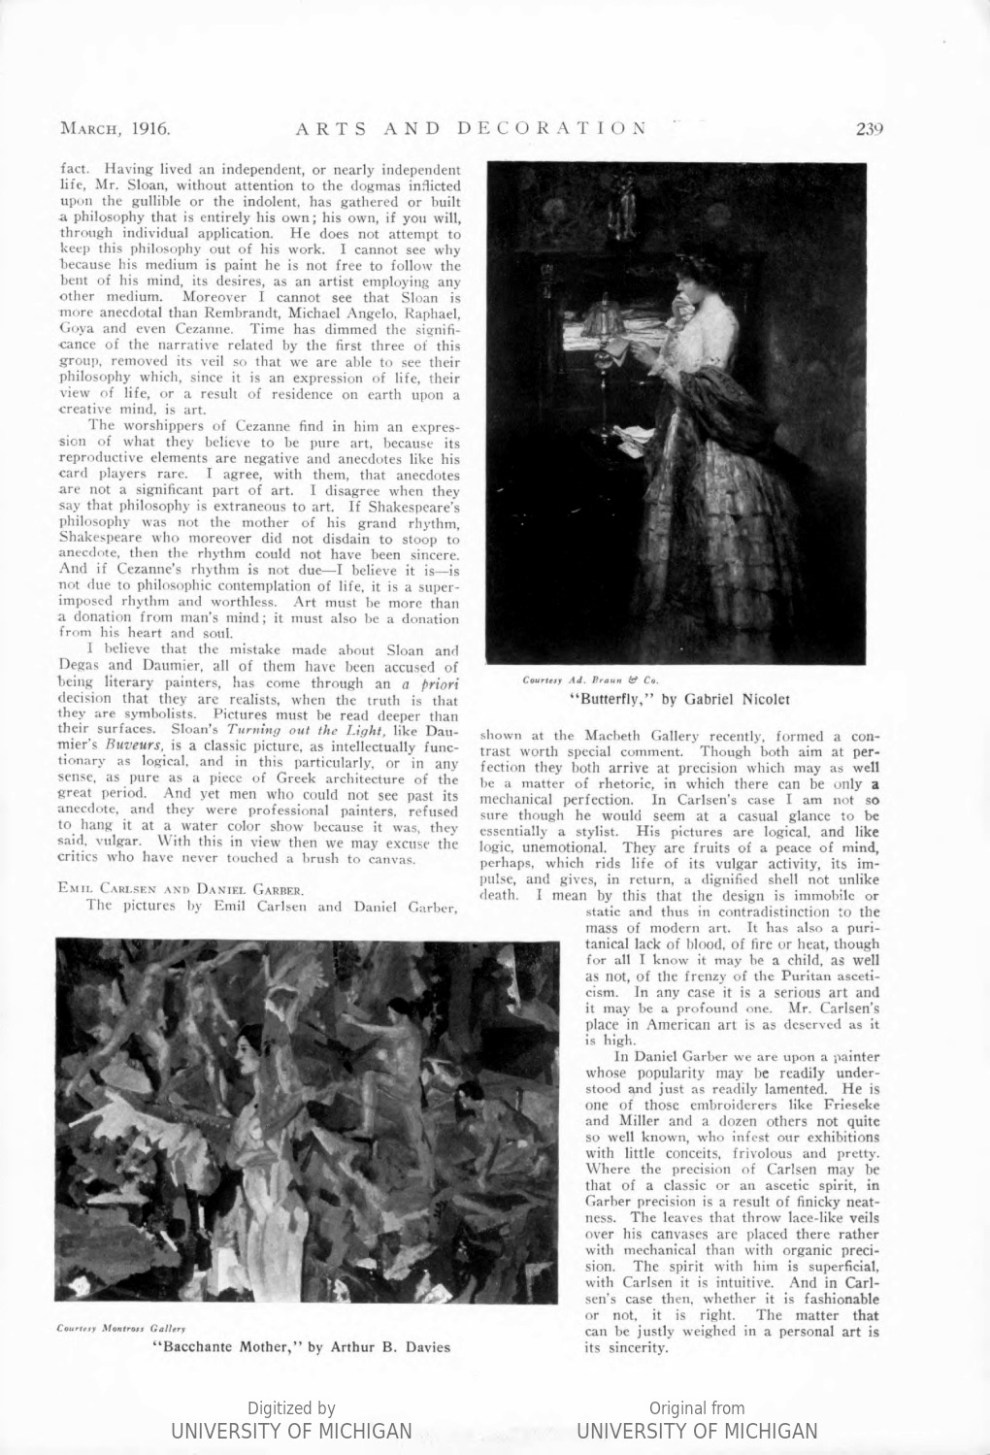 "Arts & Decoration, New York, NY, ""Exhibitions in the Galleries: Emil Carlsen and Daniel Garber "", Volume 6, Number 5, March, 1916, page 239, not illustrated"